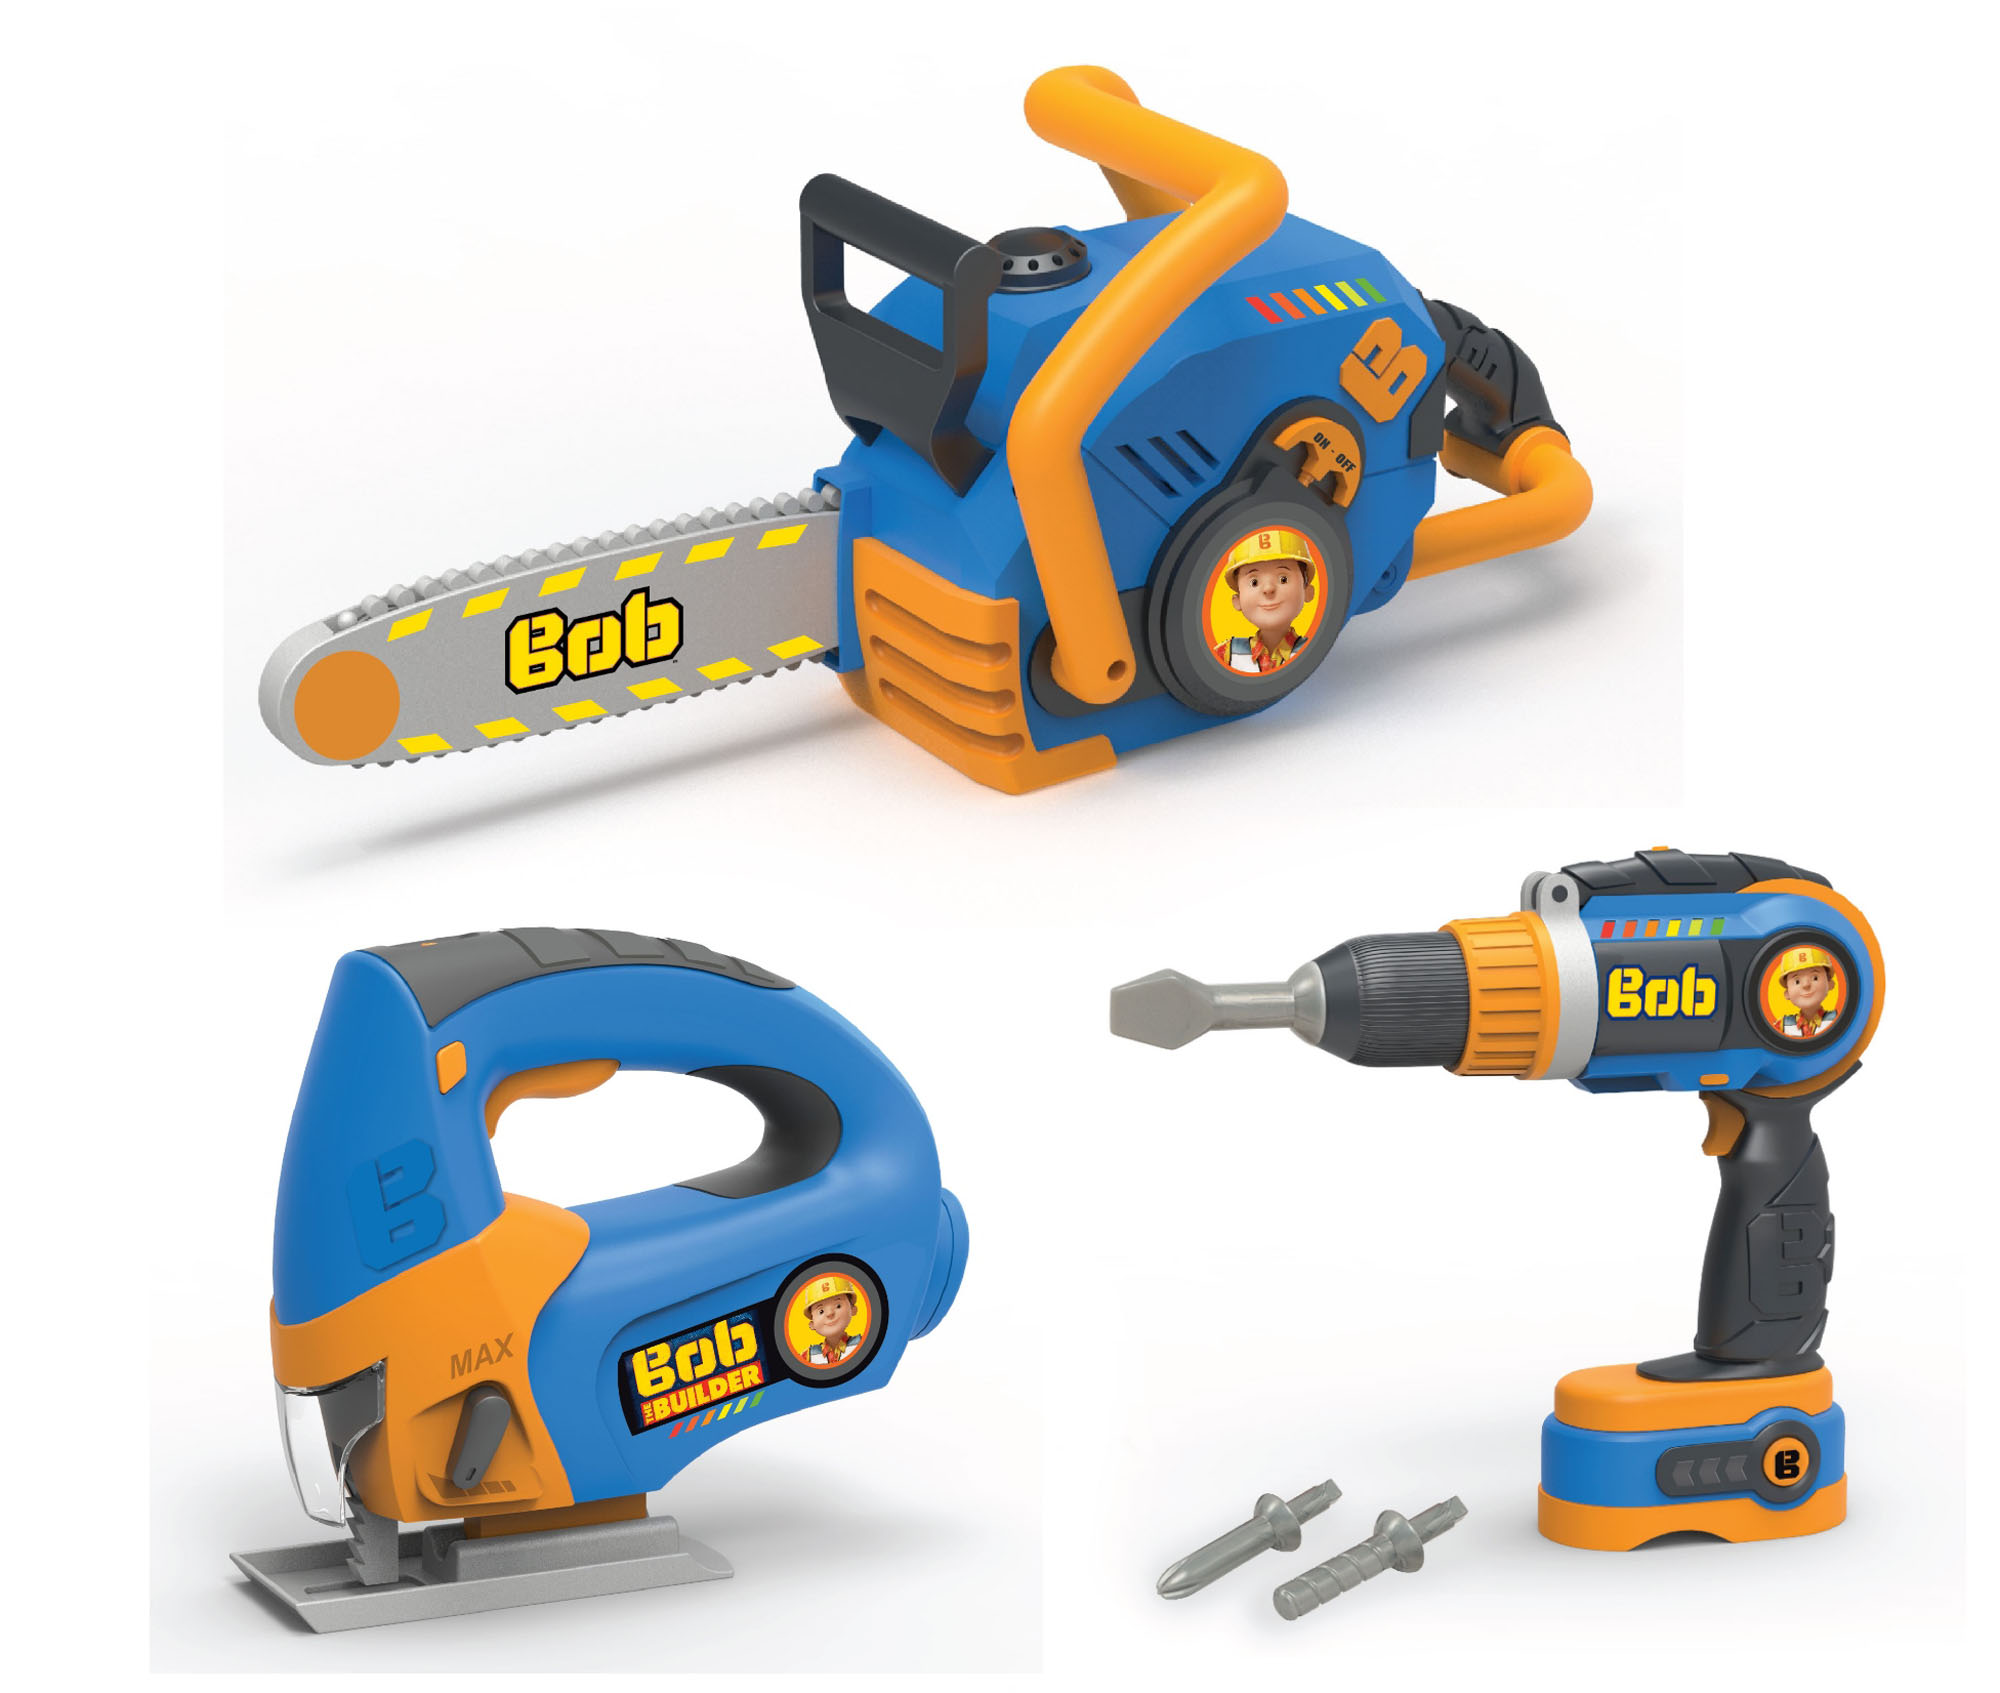 Toy Tools For Boys : Bob the builder piece electronic tool set boys